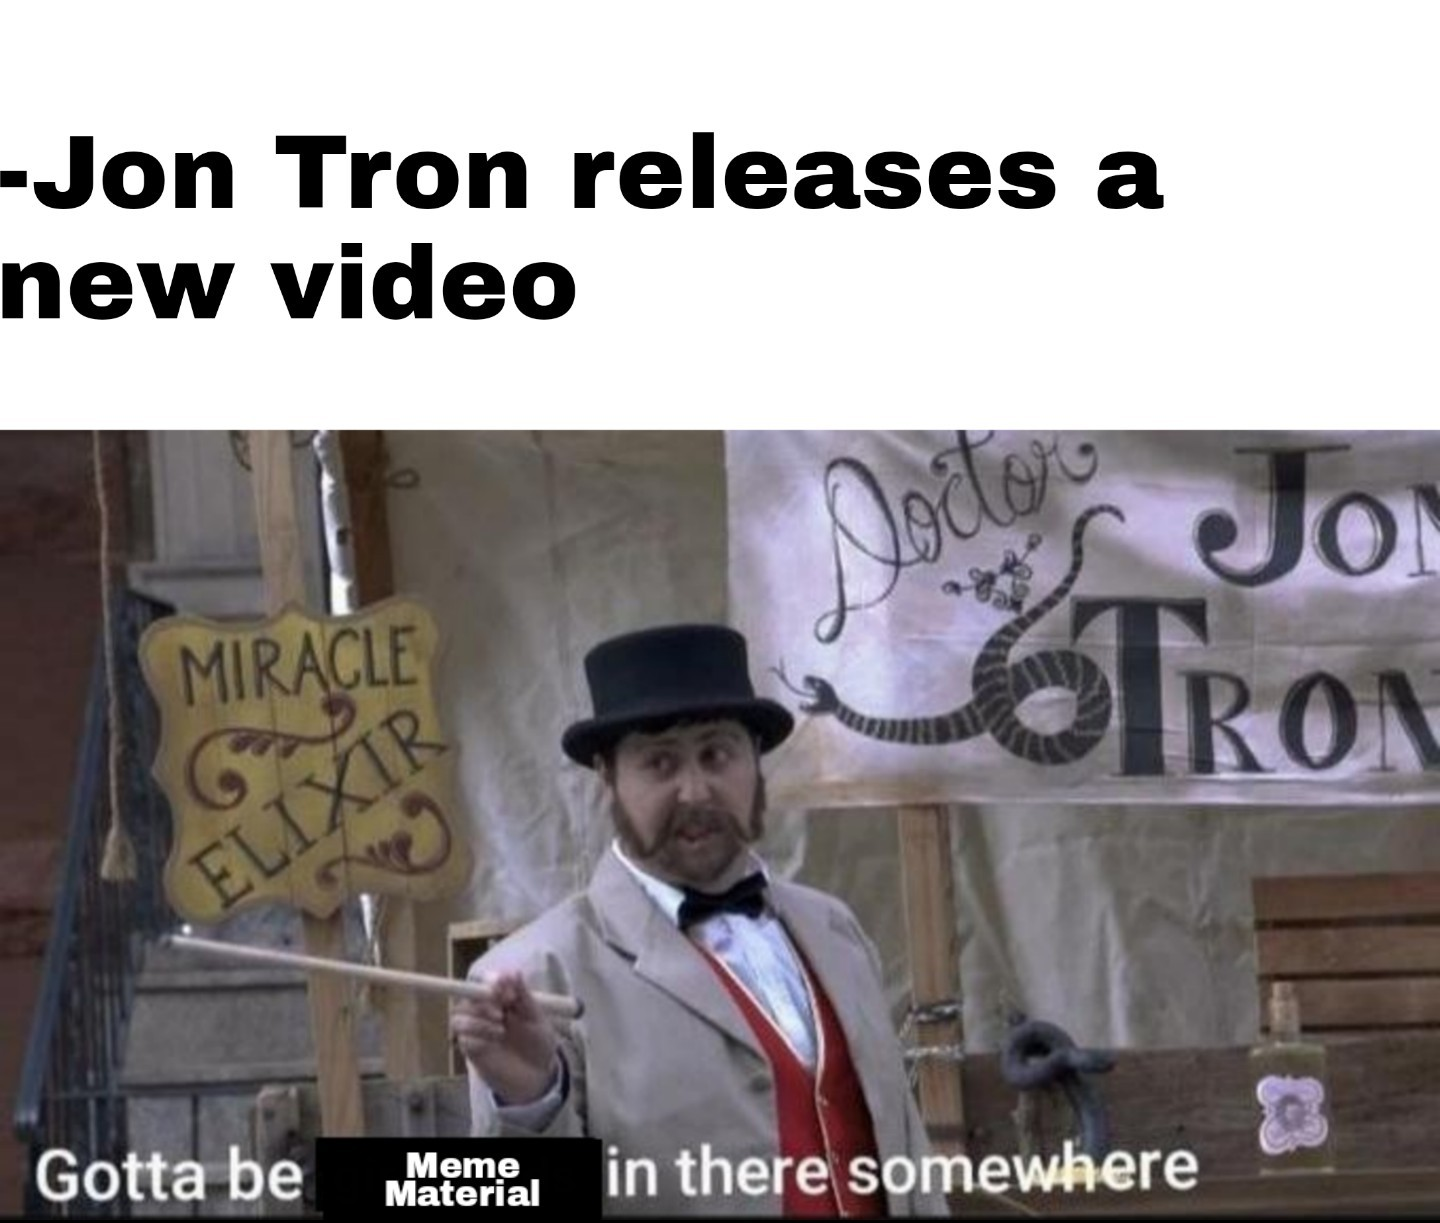 Every video has at least one great new meme format